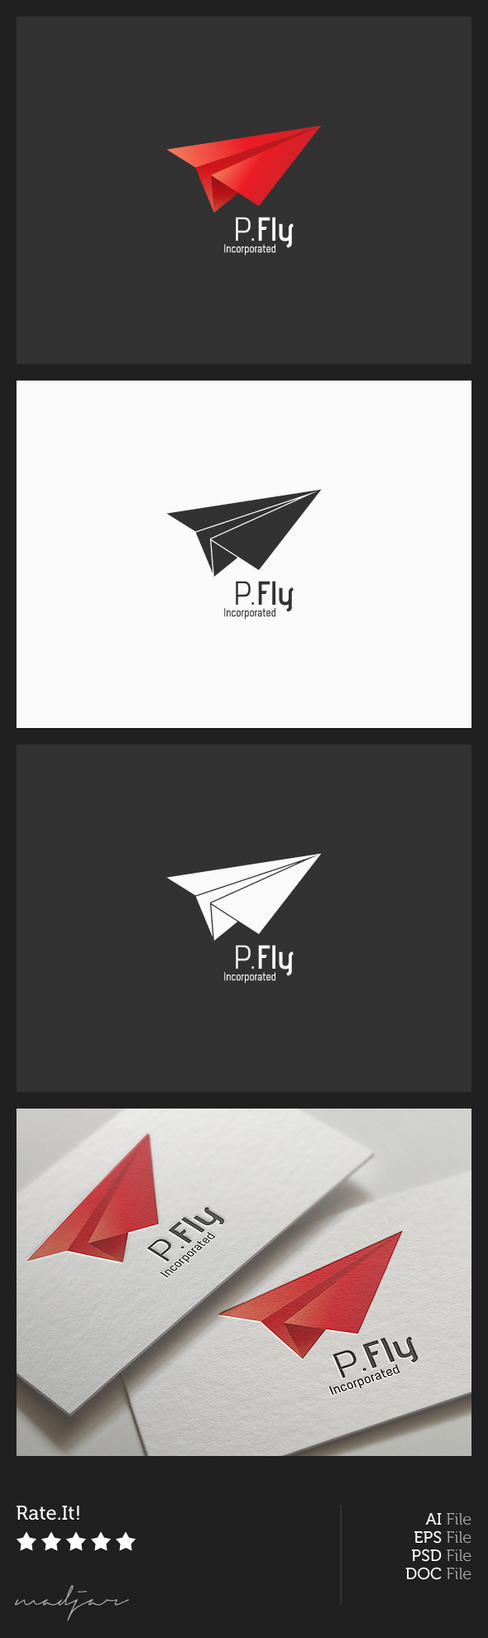 Paper Plane Logo by madjarov on DeviantArt